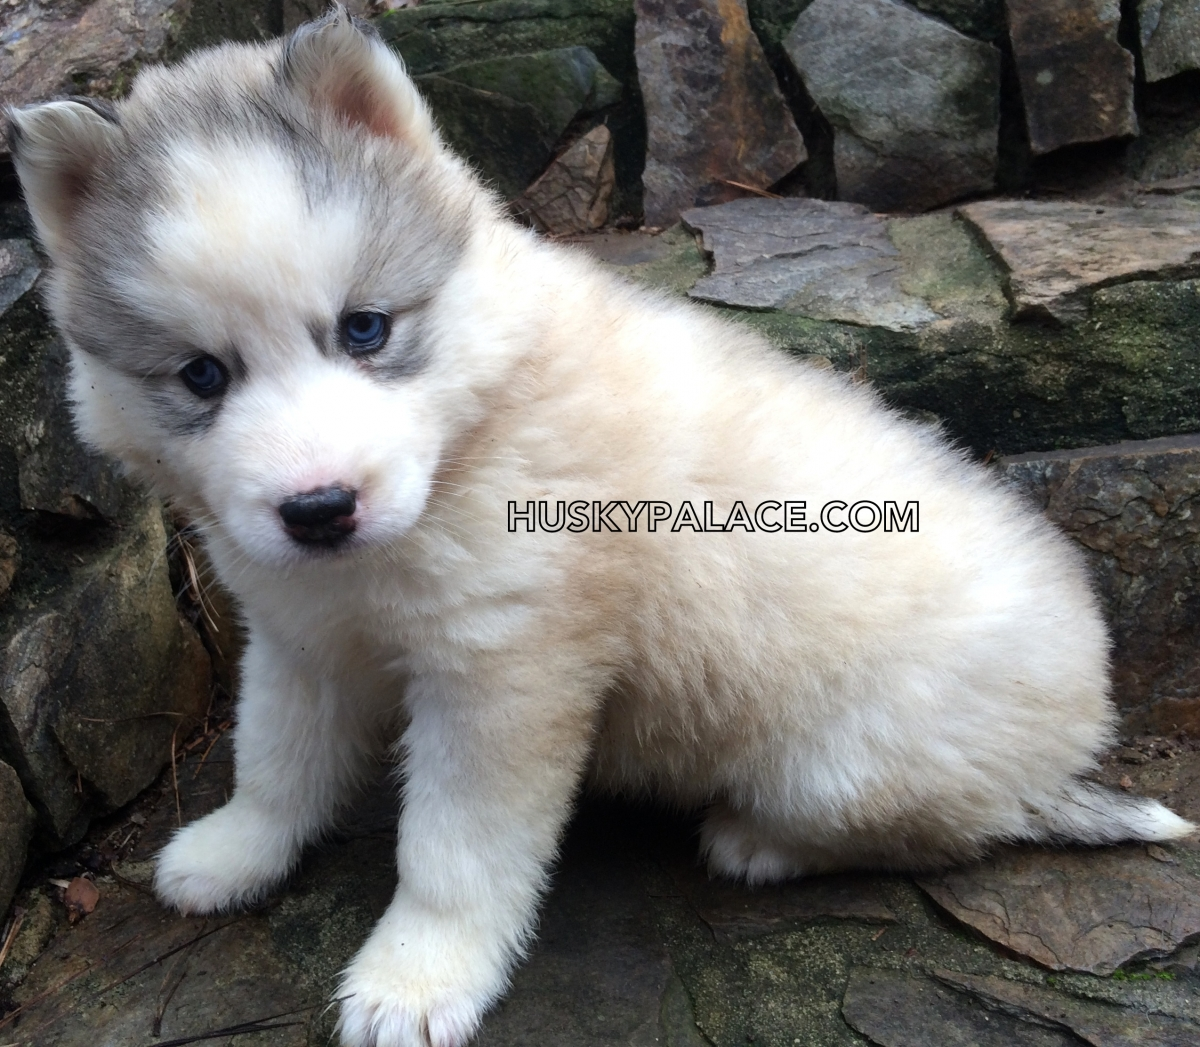 Adorable Siberian Husky Pictures of Past Puppies | Husky Palace